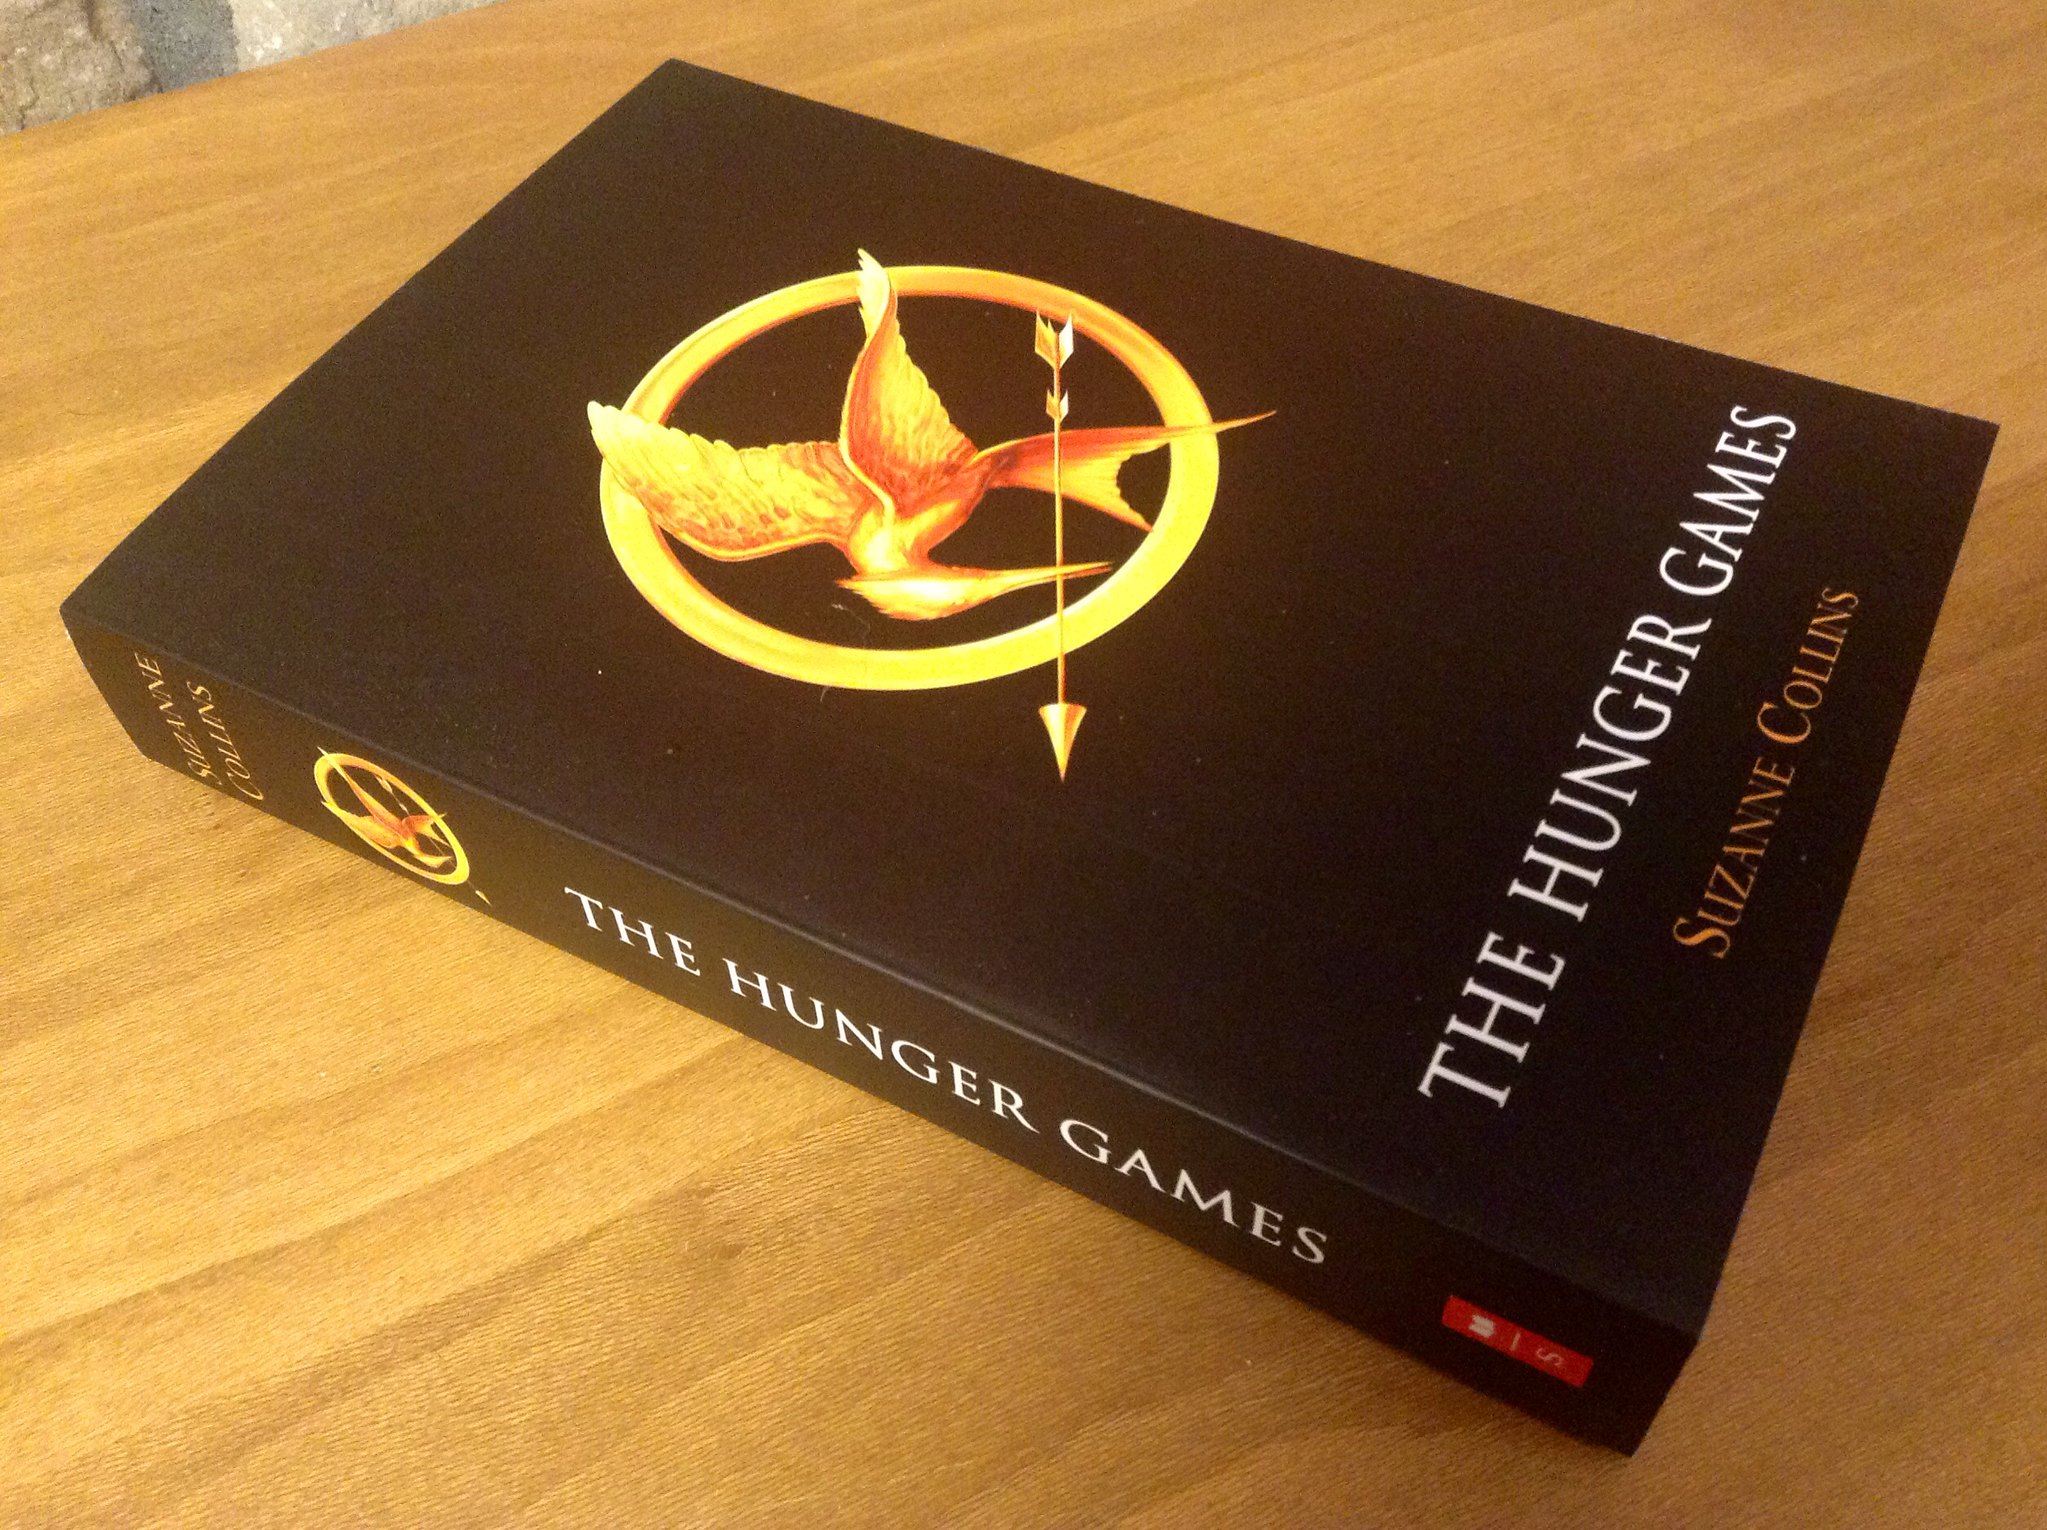 Hungry Games book cover